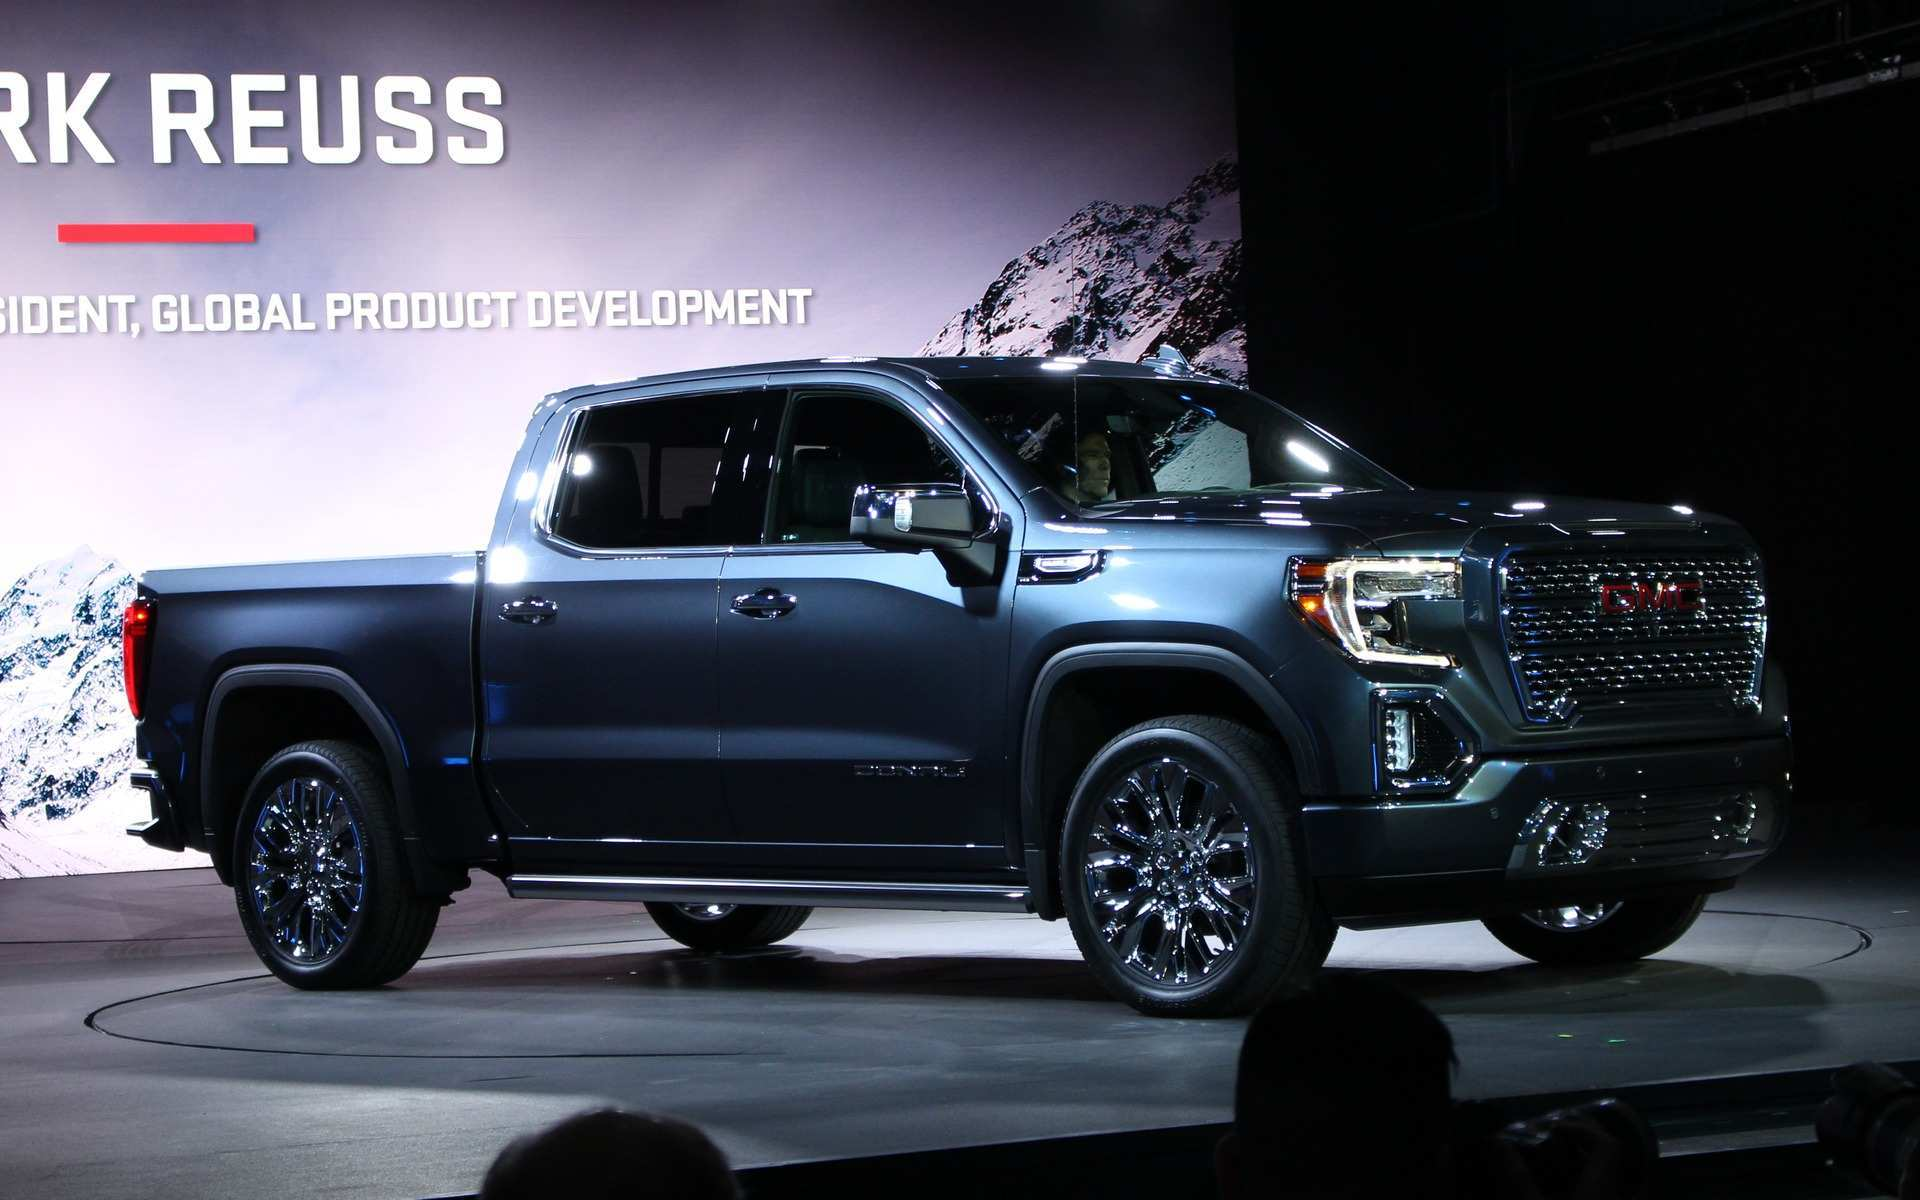 73 The New Gmc Sierra 2019 Weight Redesign And Price Style for New Gmc Sierra 2019 Weight Redesign And Price